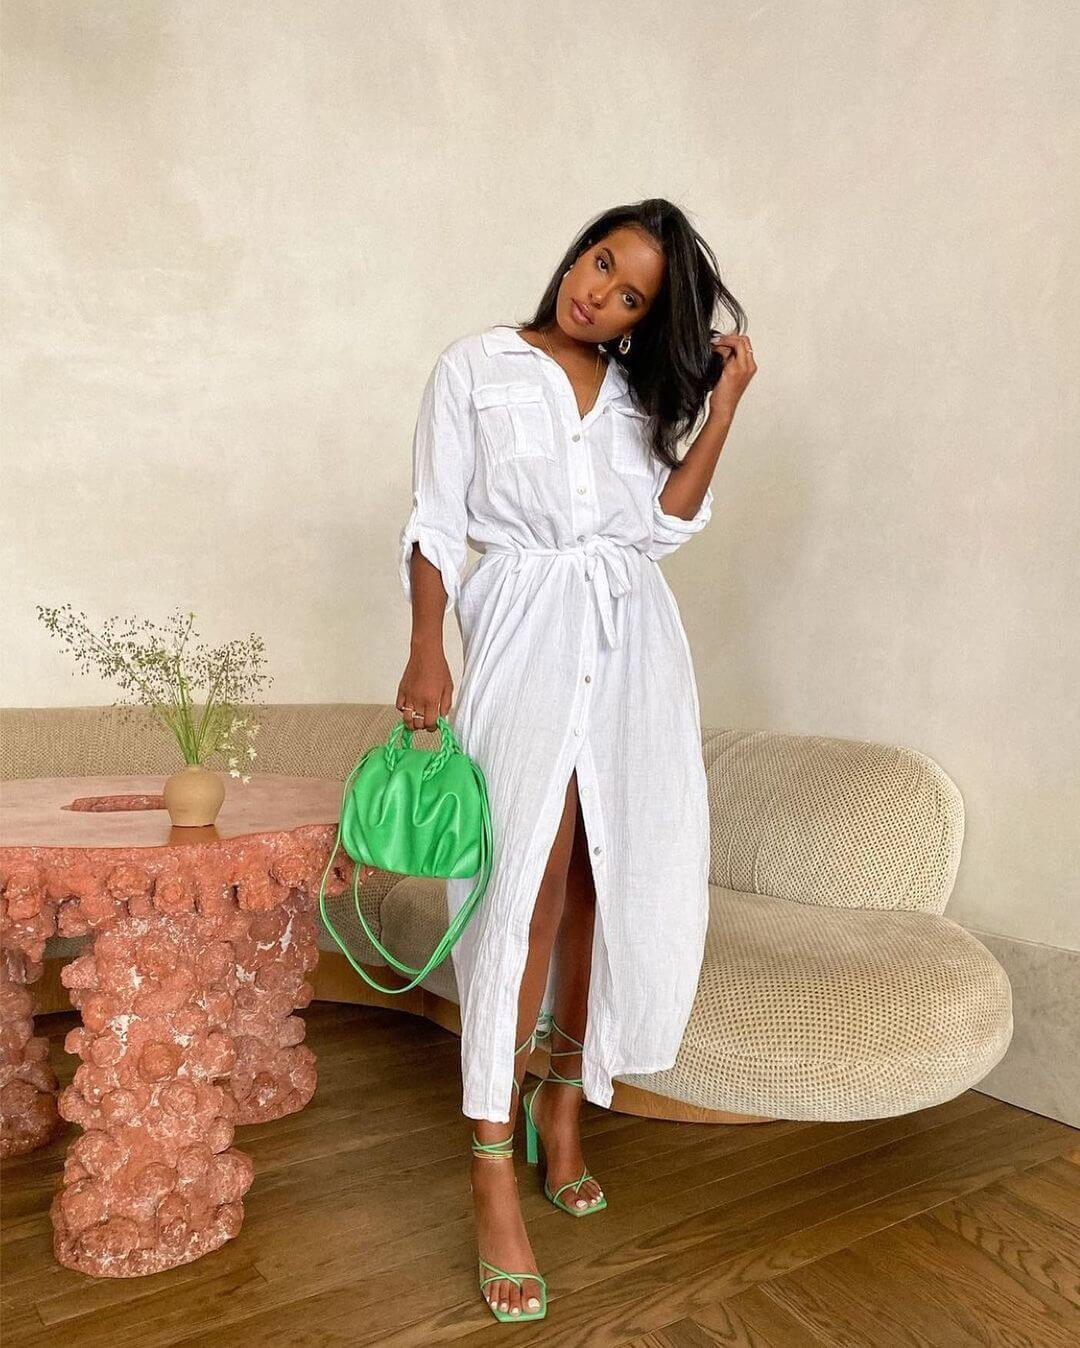 10 Chic Pool Party Outfits That Make An Entrance